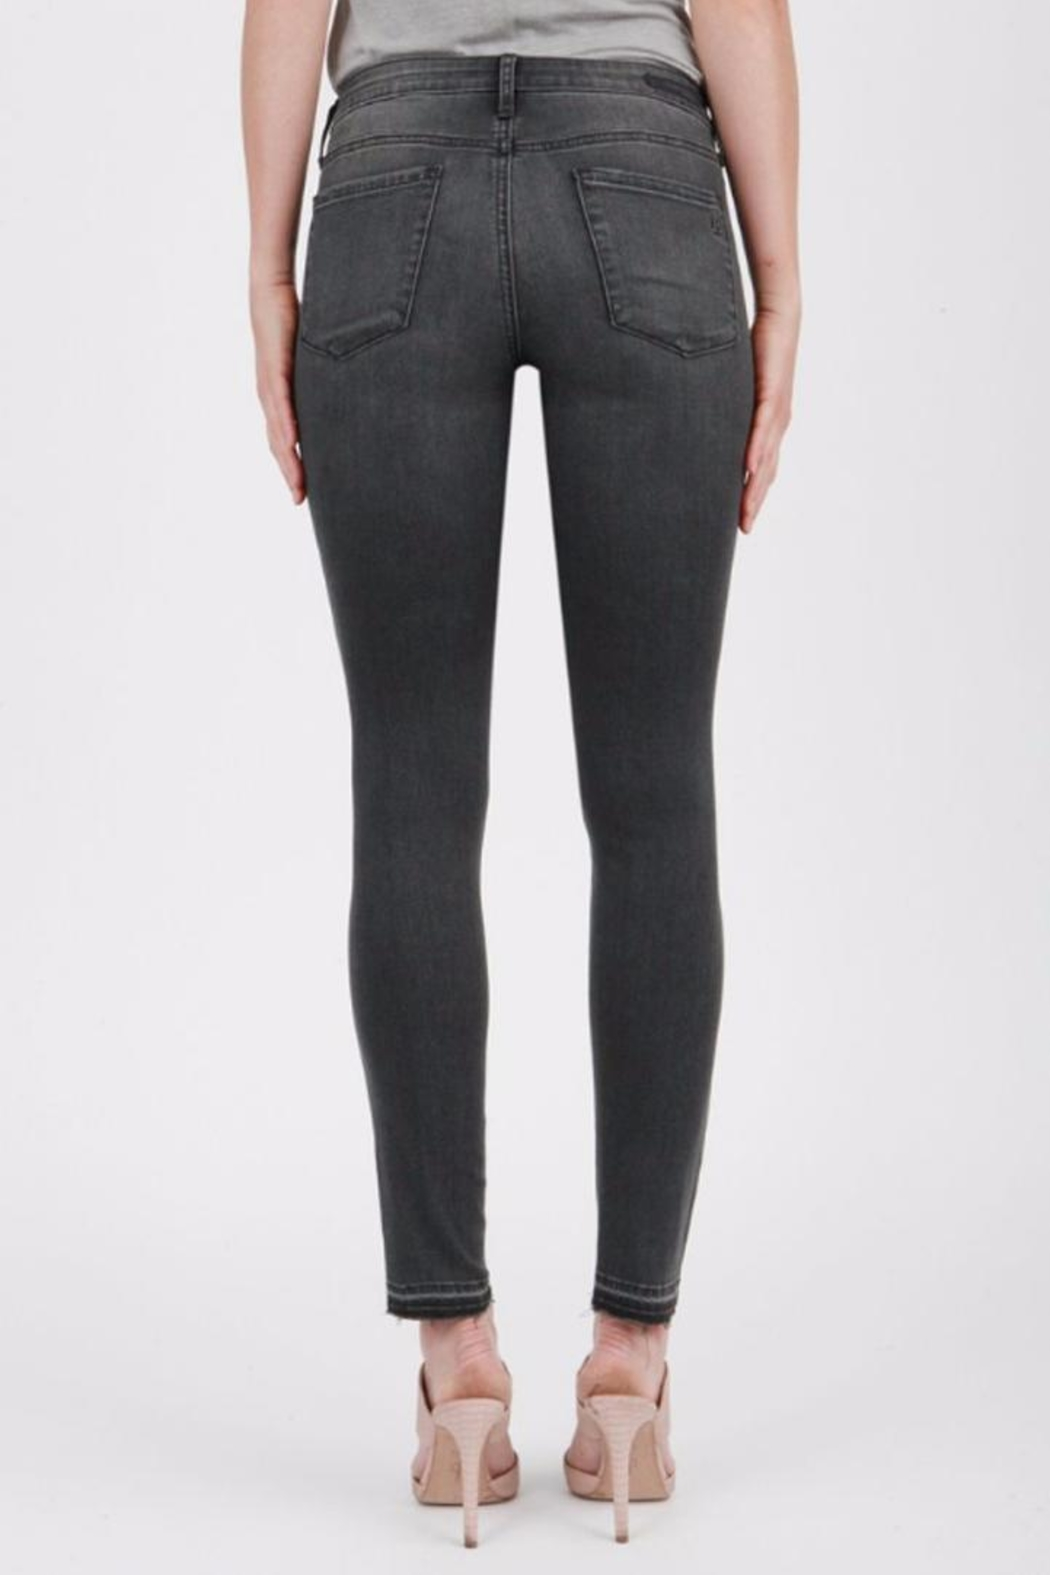 Articles of Society Skinny Balboa Jeans - Side Cropped Image